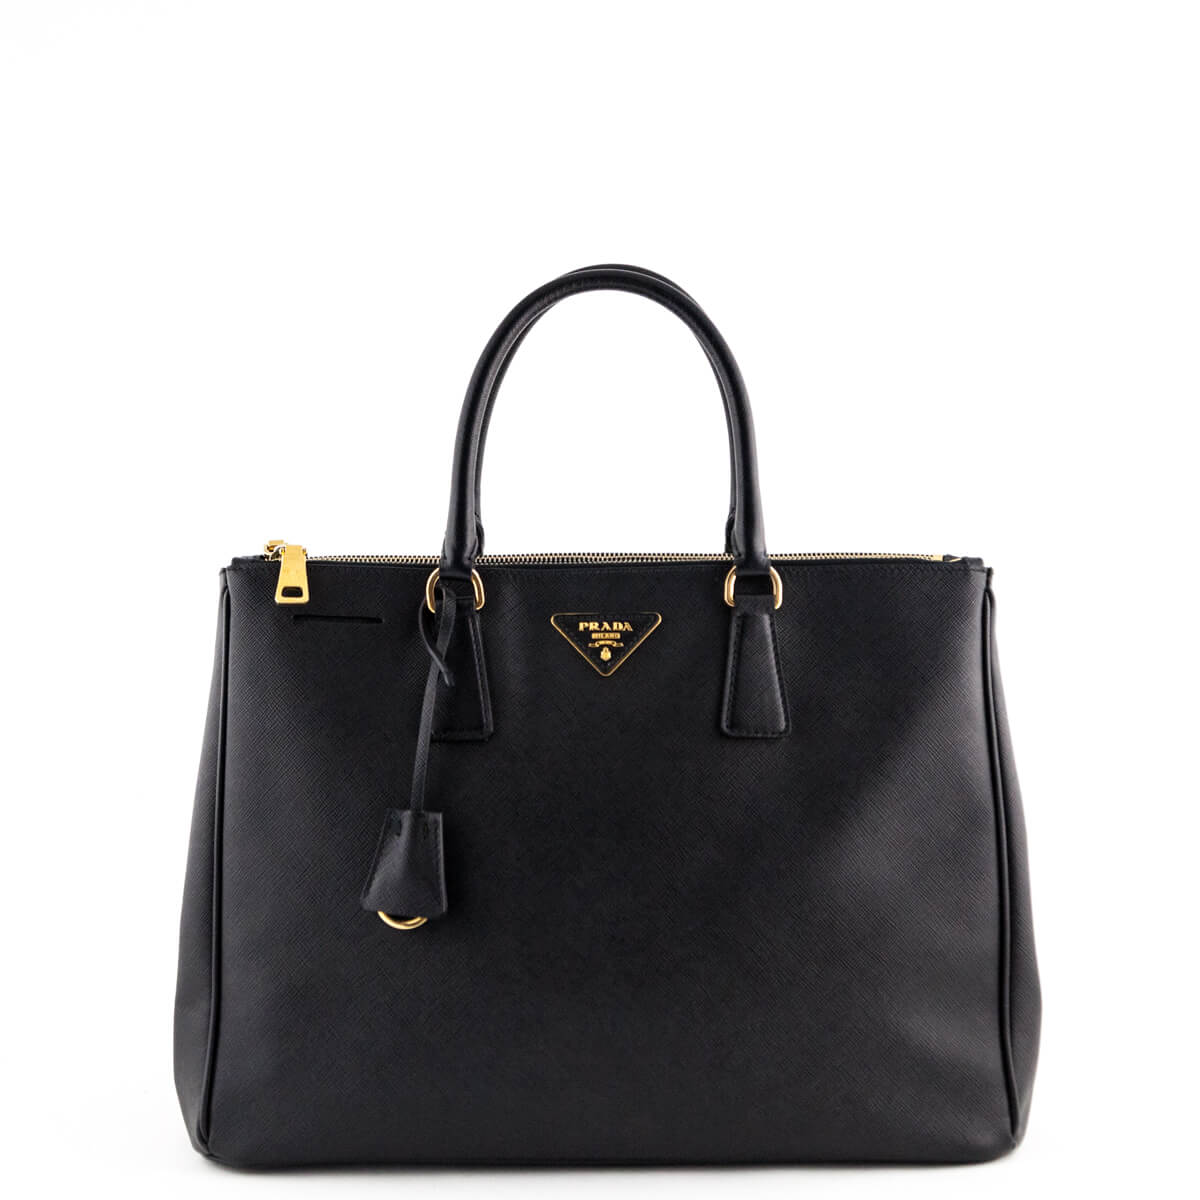 bb23410ae85a ... womens fashion bags 35a83 8615d best price prada black saffiano large  galleria double zip tote love that bag preowned authentic designer ...